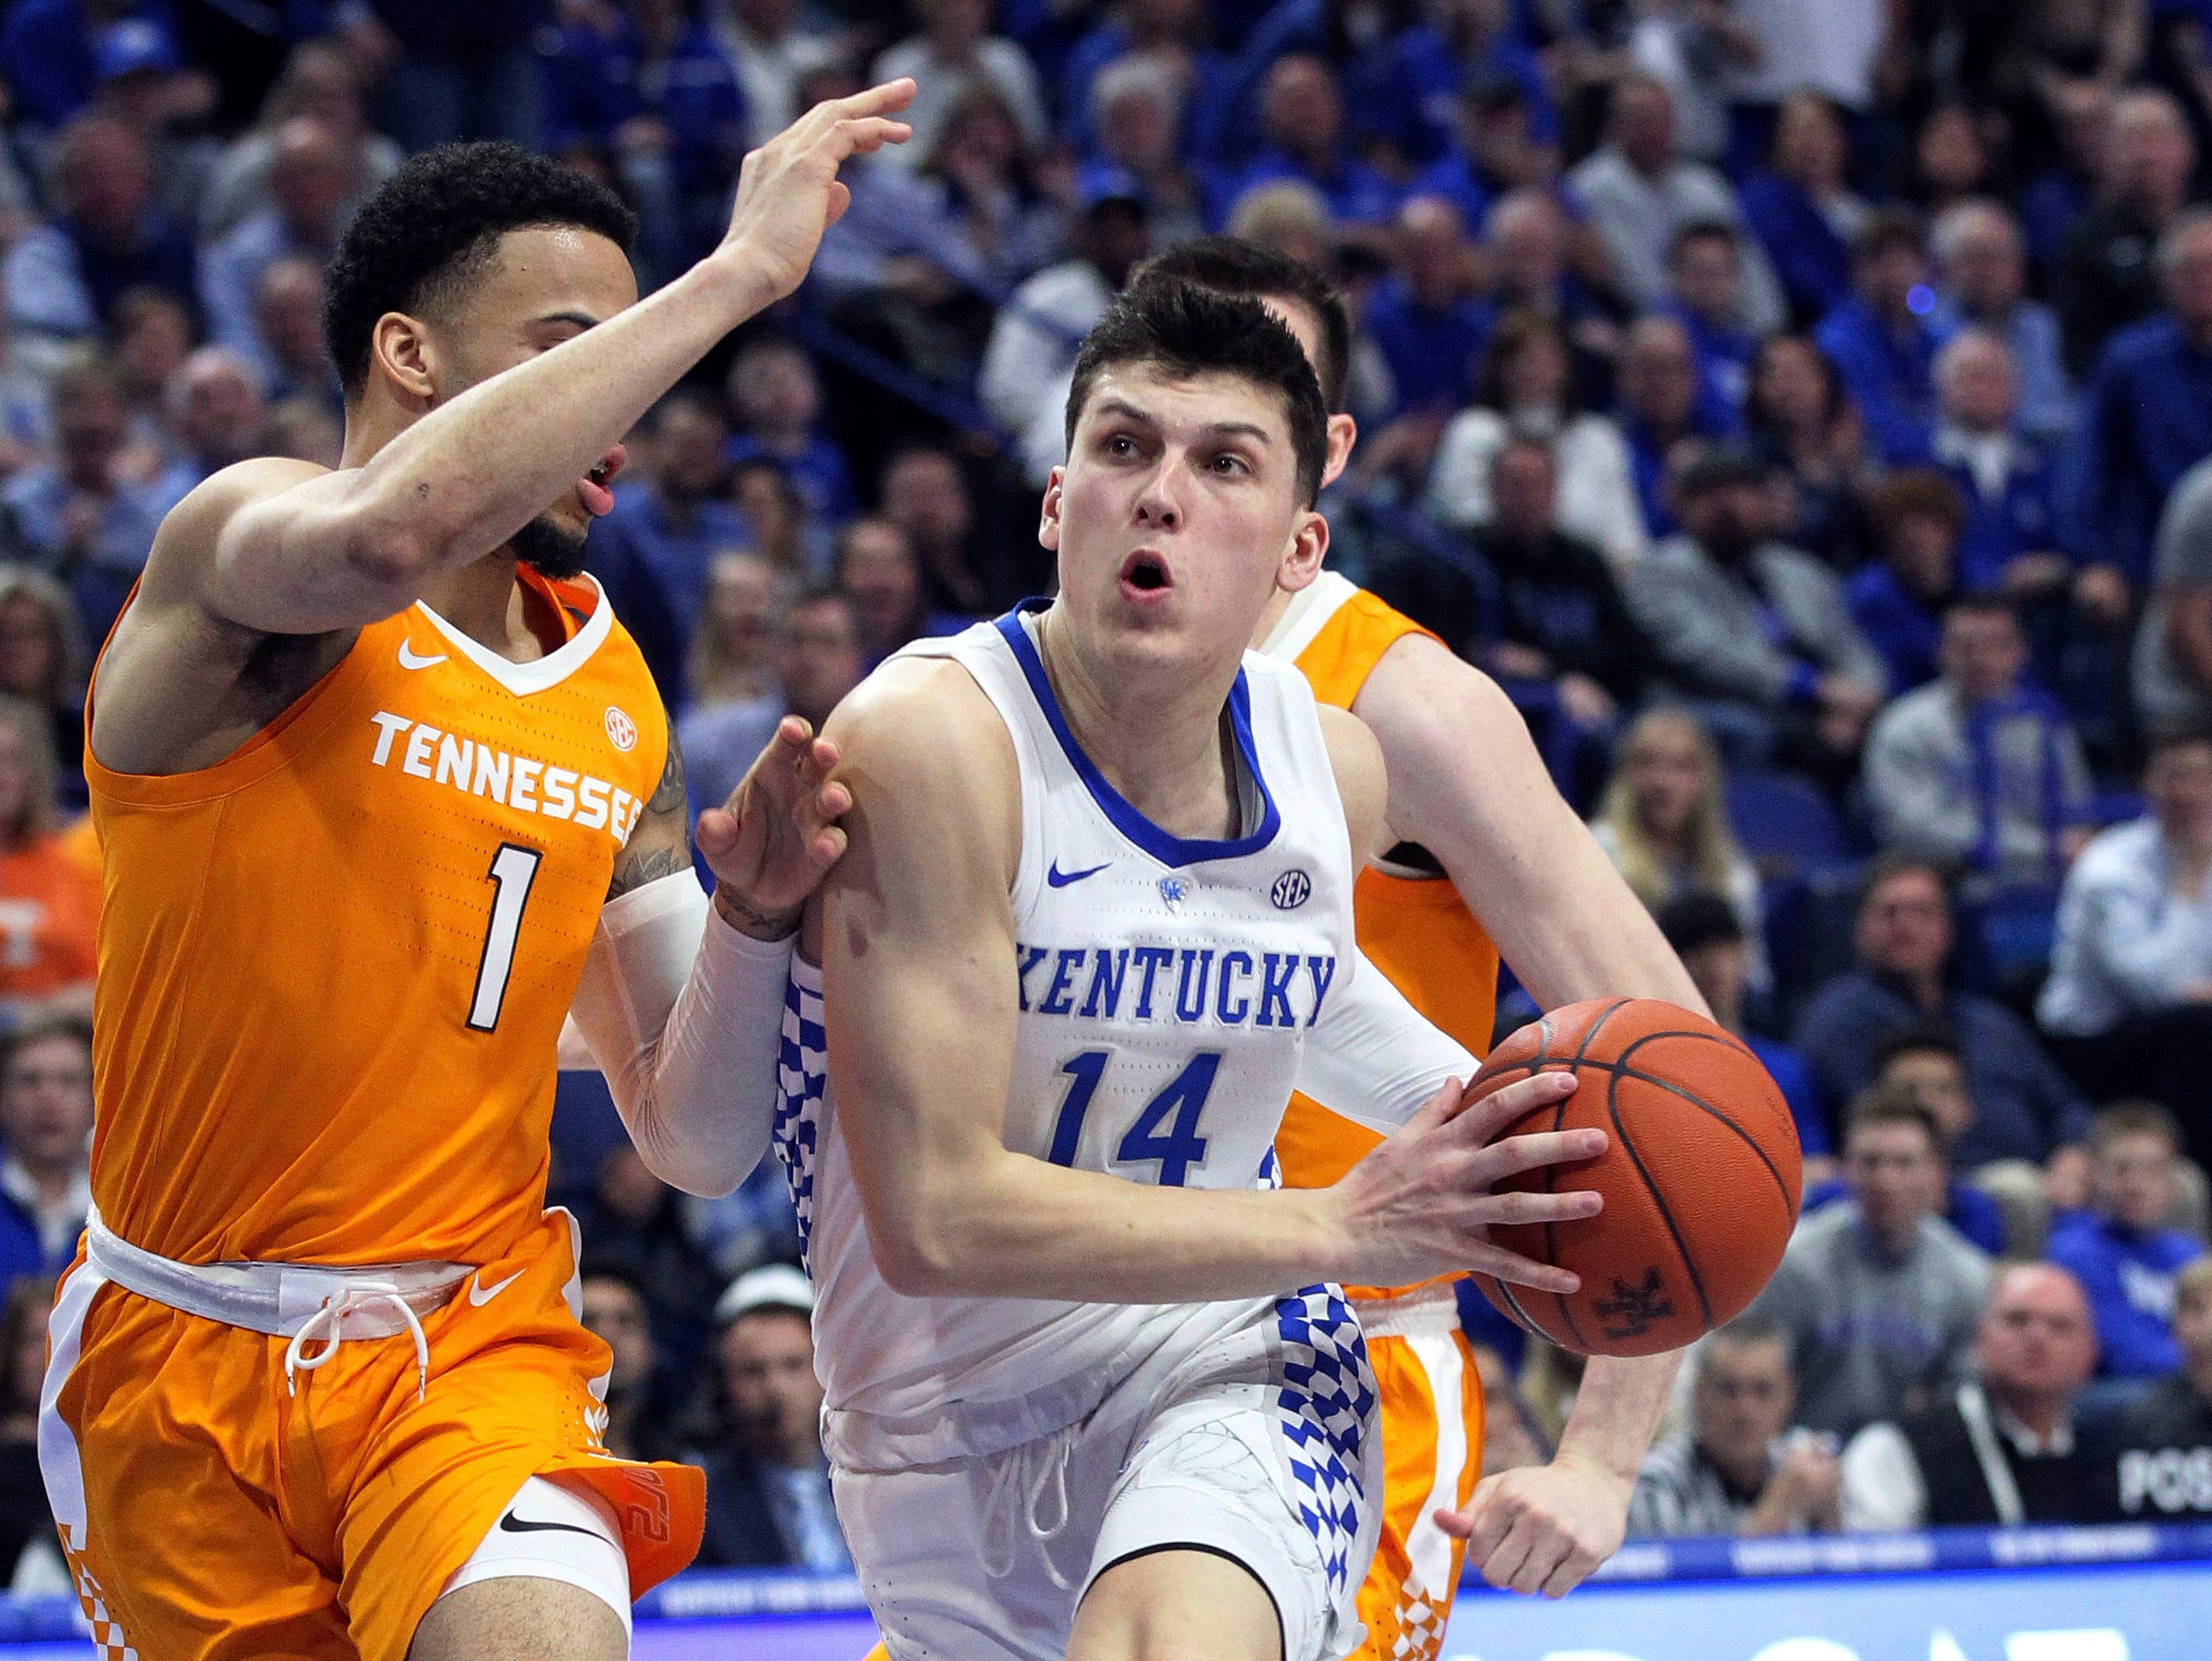 Kentucky's Tyler Herro (14) drives on Tennessee's Lamonte Turner (1) during the first half of an NCAA college basketball game in Lexington, Ky., Saturday, Feb. 16, 2019. (AP Photo/James Crisp)